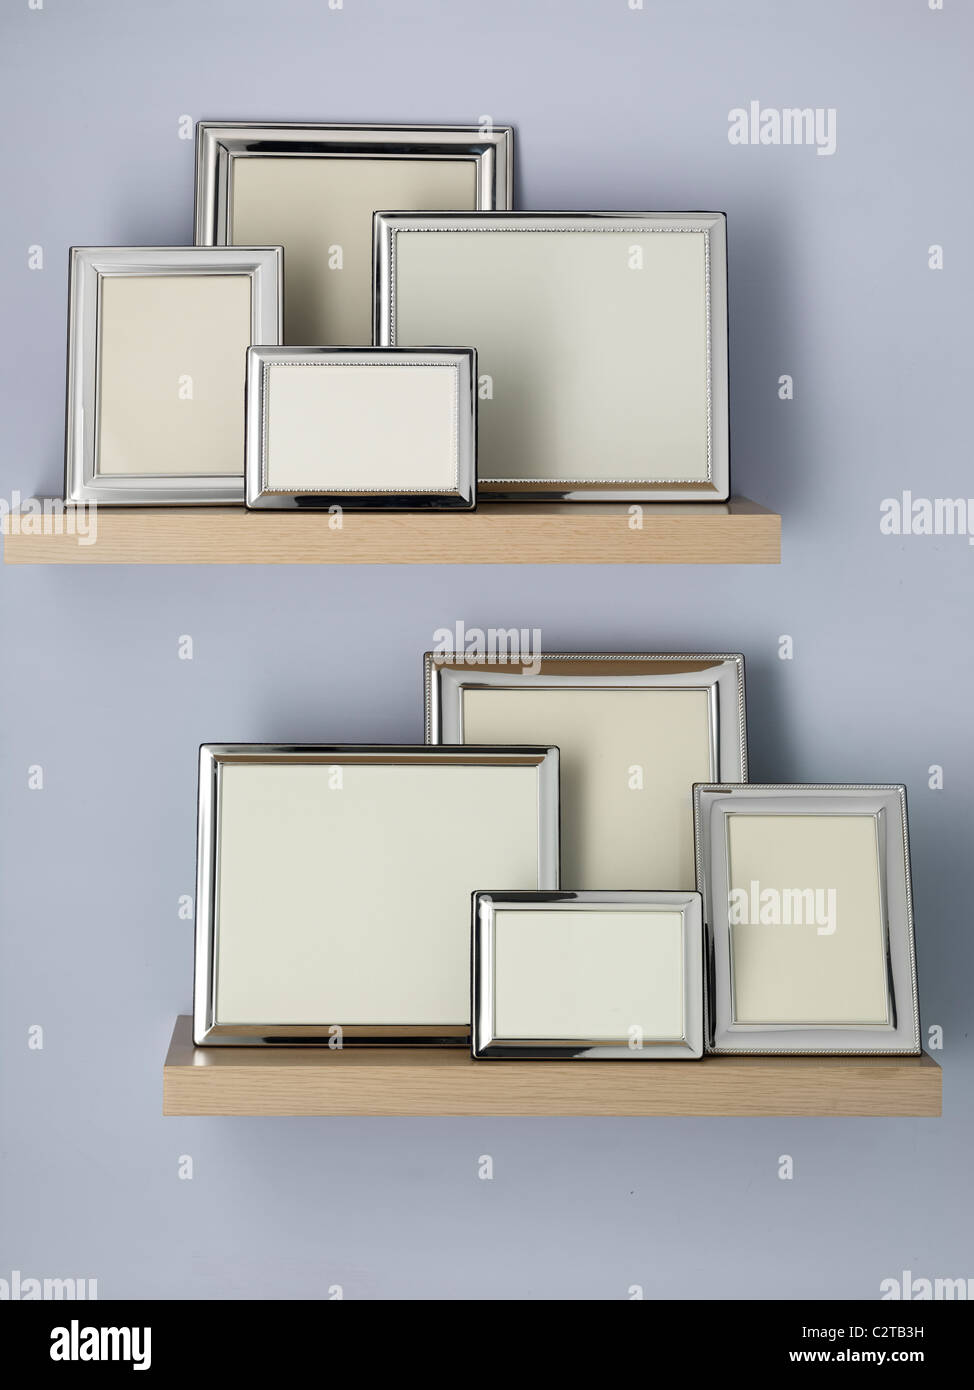 Picture Frames Shelf Stockfotos & Picture Frames Shelf Bilder - Alamy